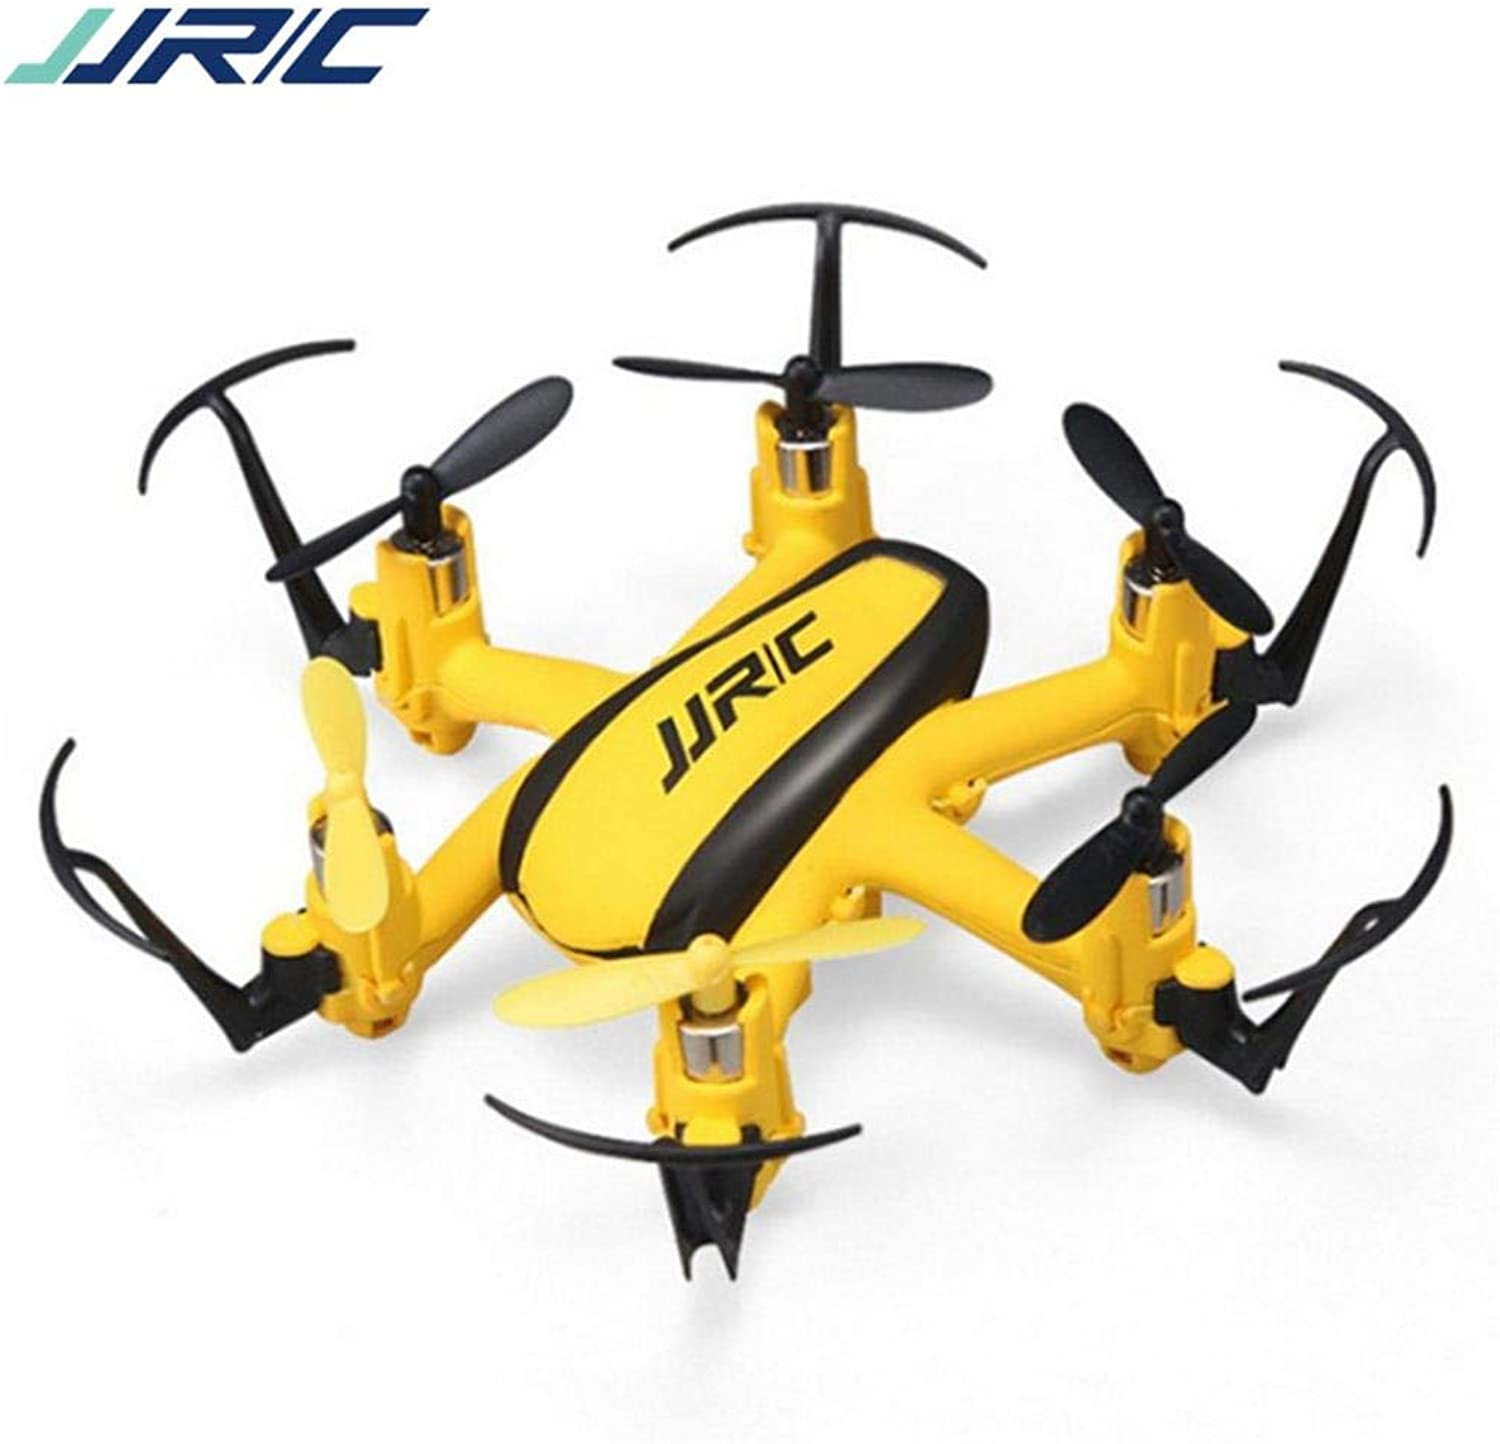 perfecto M JJRC Indoor Mini Six-Axis Aircraft Fixed Height Function Function Function Pattern rojoating Headless Mode Drone Juguete  exclusivo